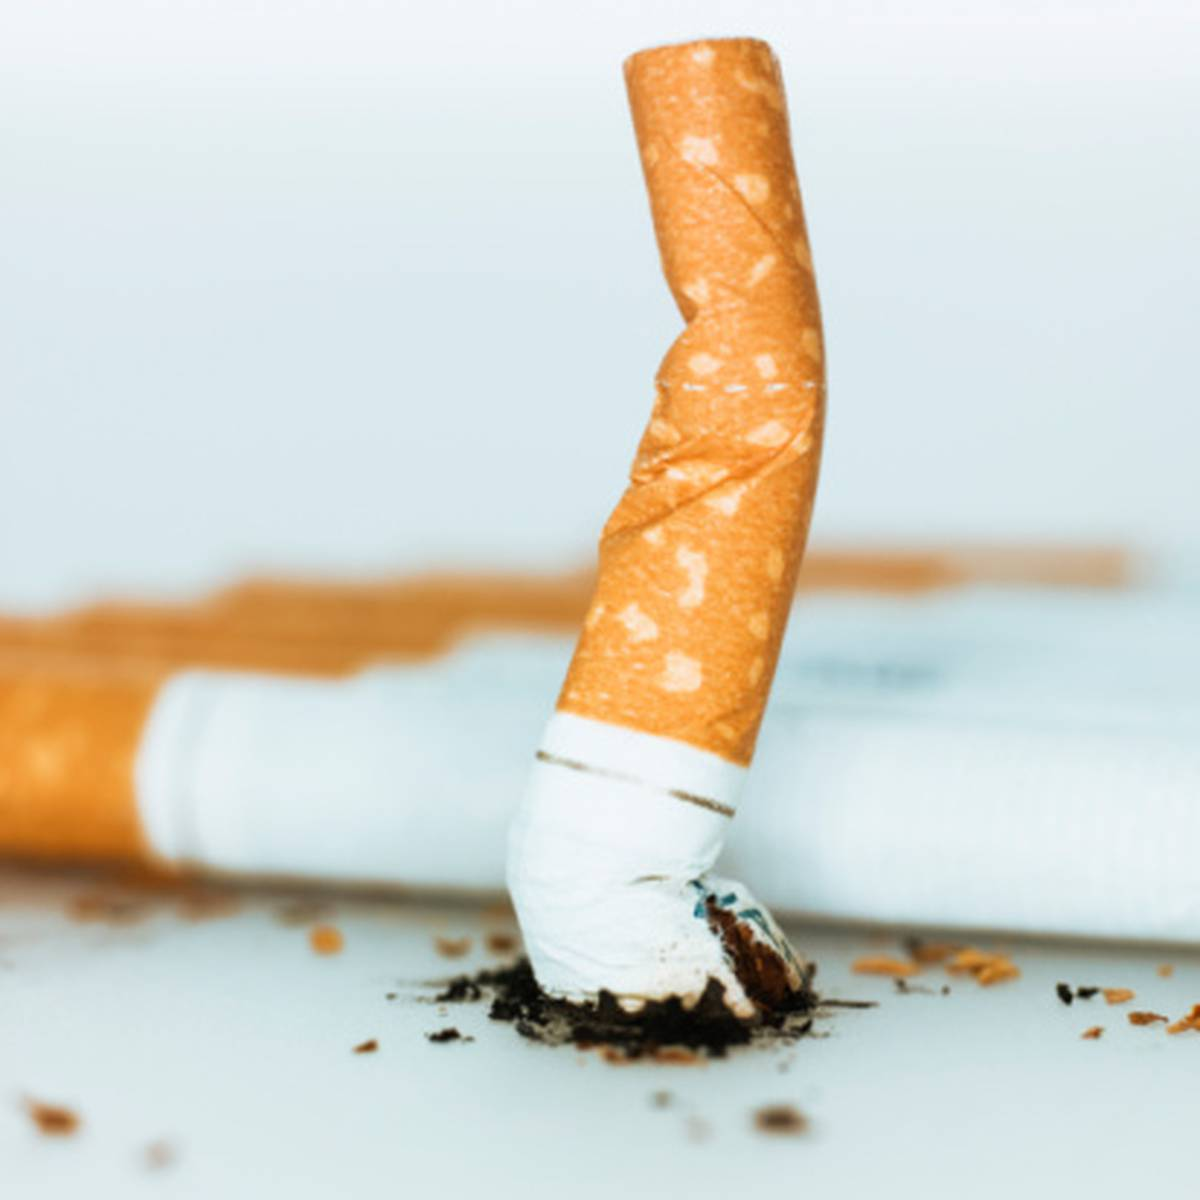 persuasive speech on smoking cigarettes Persuasive speech smoking ban  negative effects of smoking cigarettes each year cigarettes are responsible for about 443,000 deaths, on average this is smokers dying 13 to 14 years sooner than nonsmokers1 cigarette smoking is a.